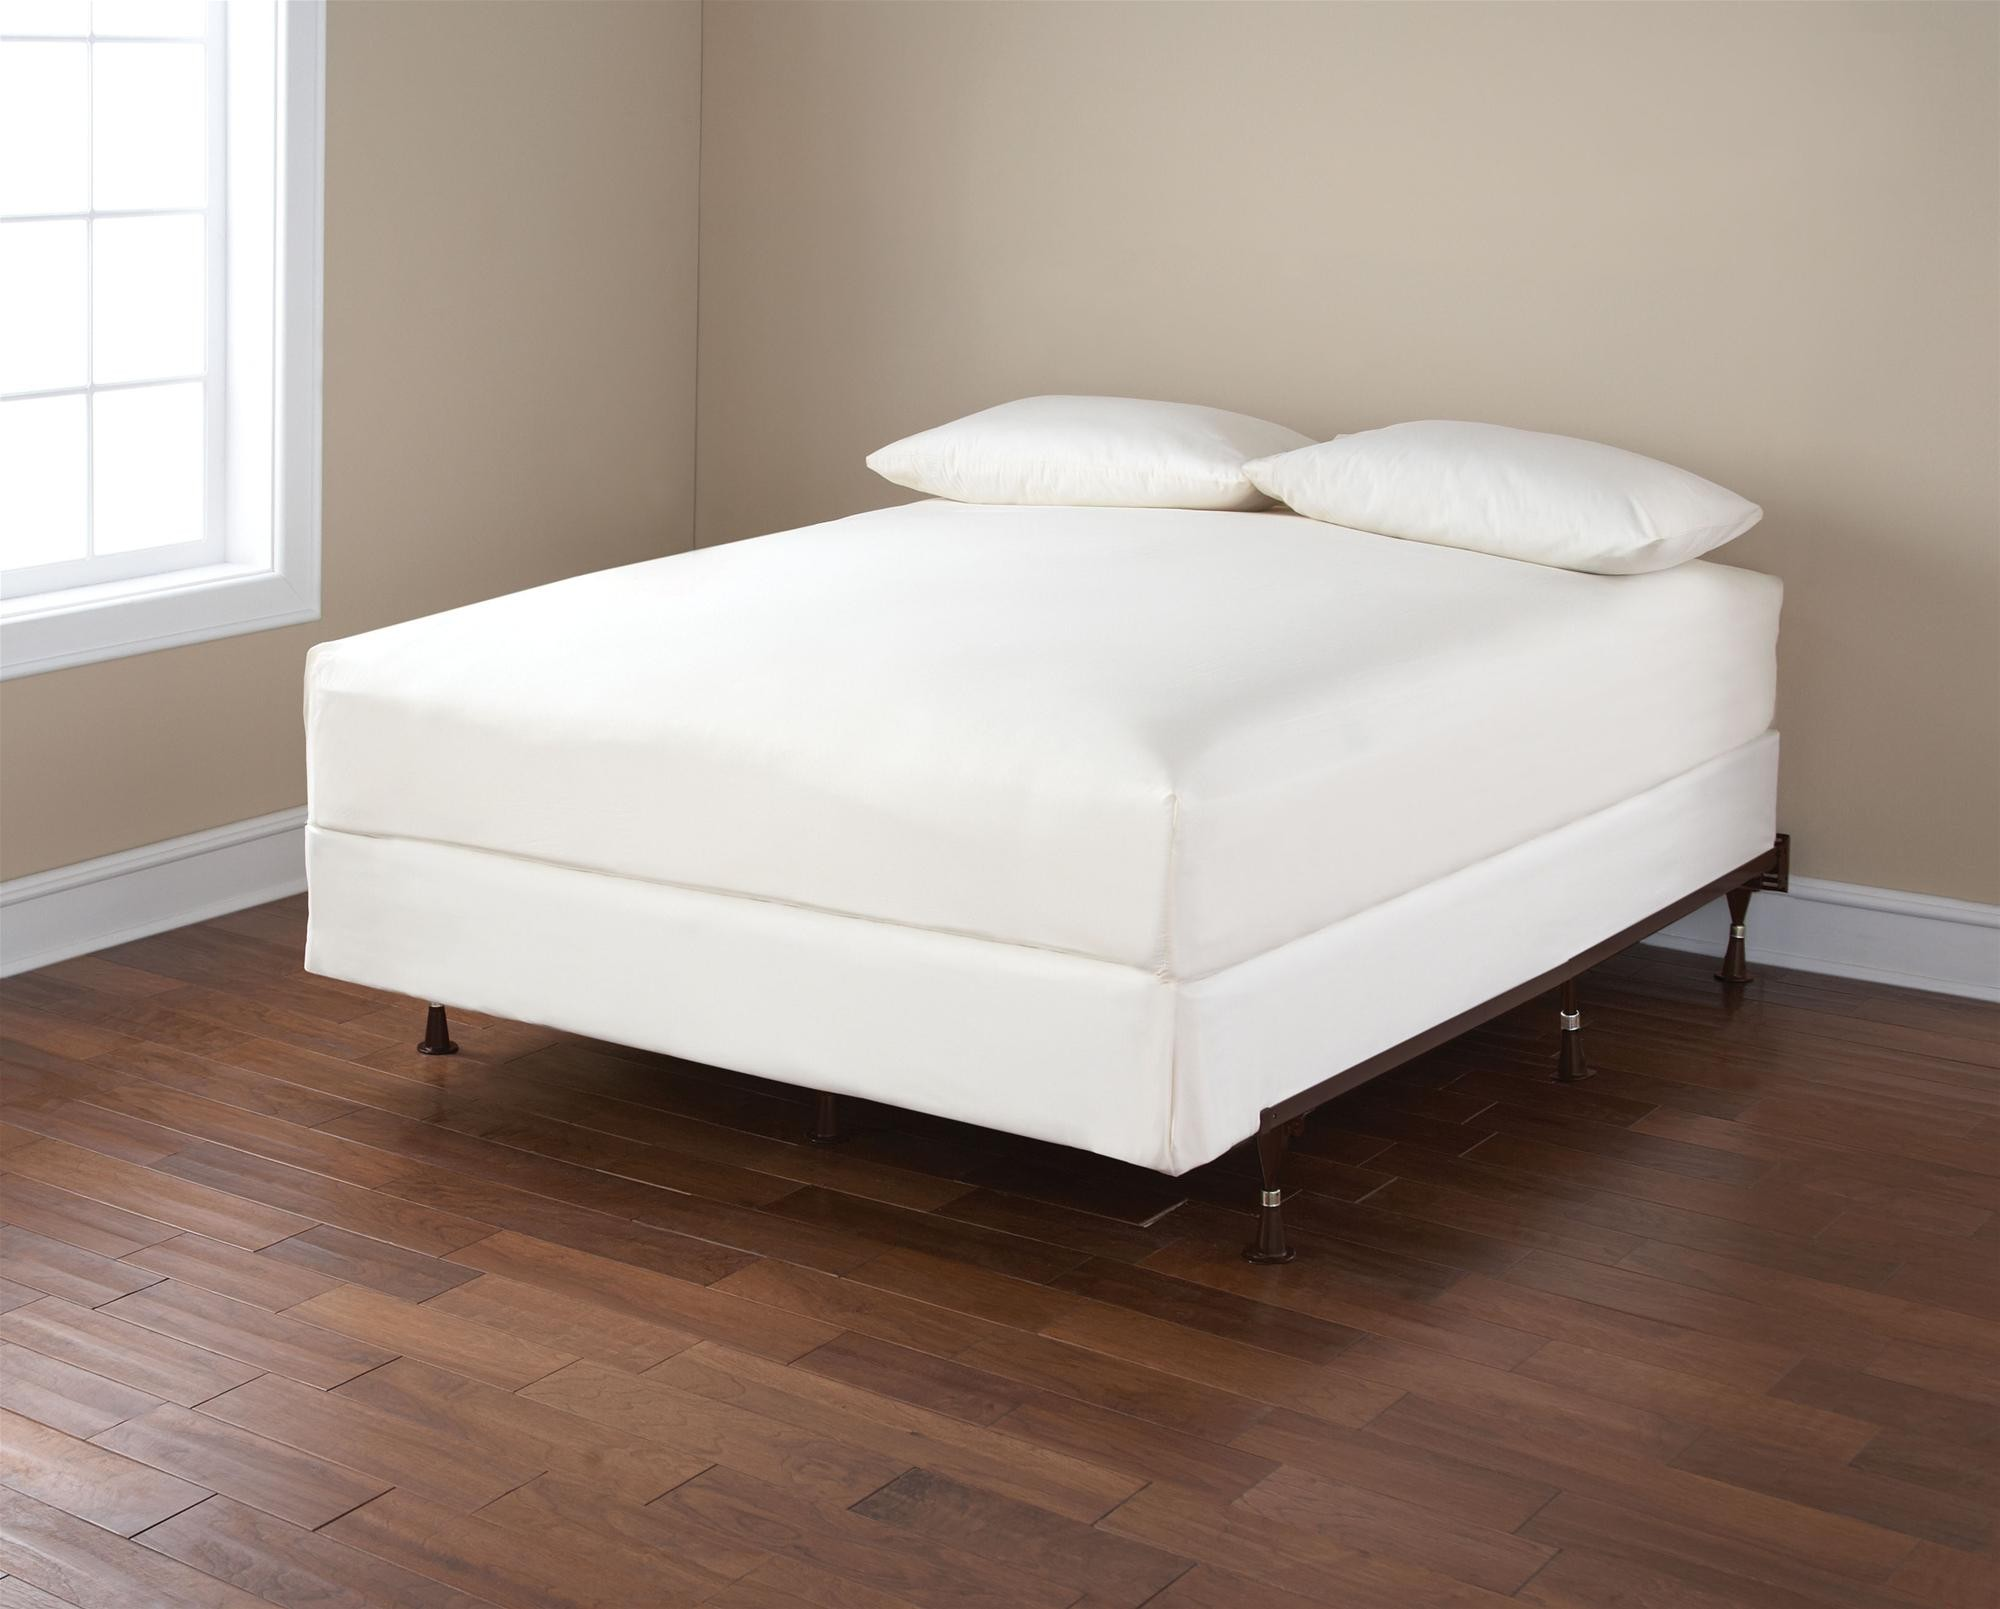 finest selection d55e1 4265f How To Store A Mattress, Box Spring, And Bed Frame